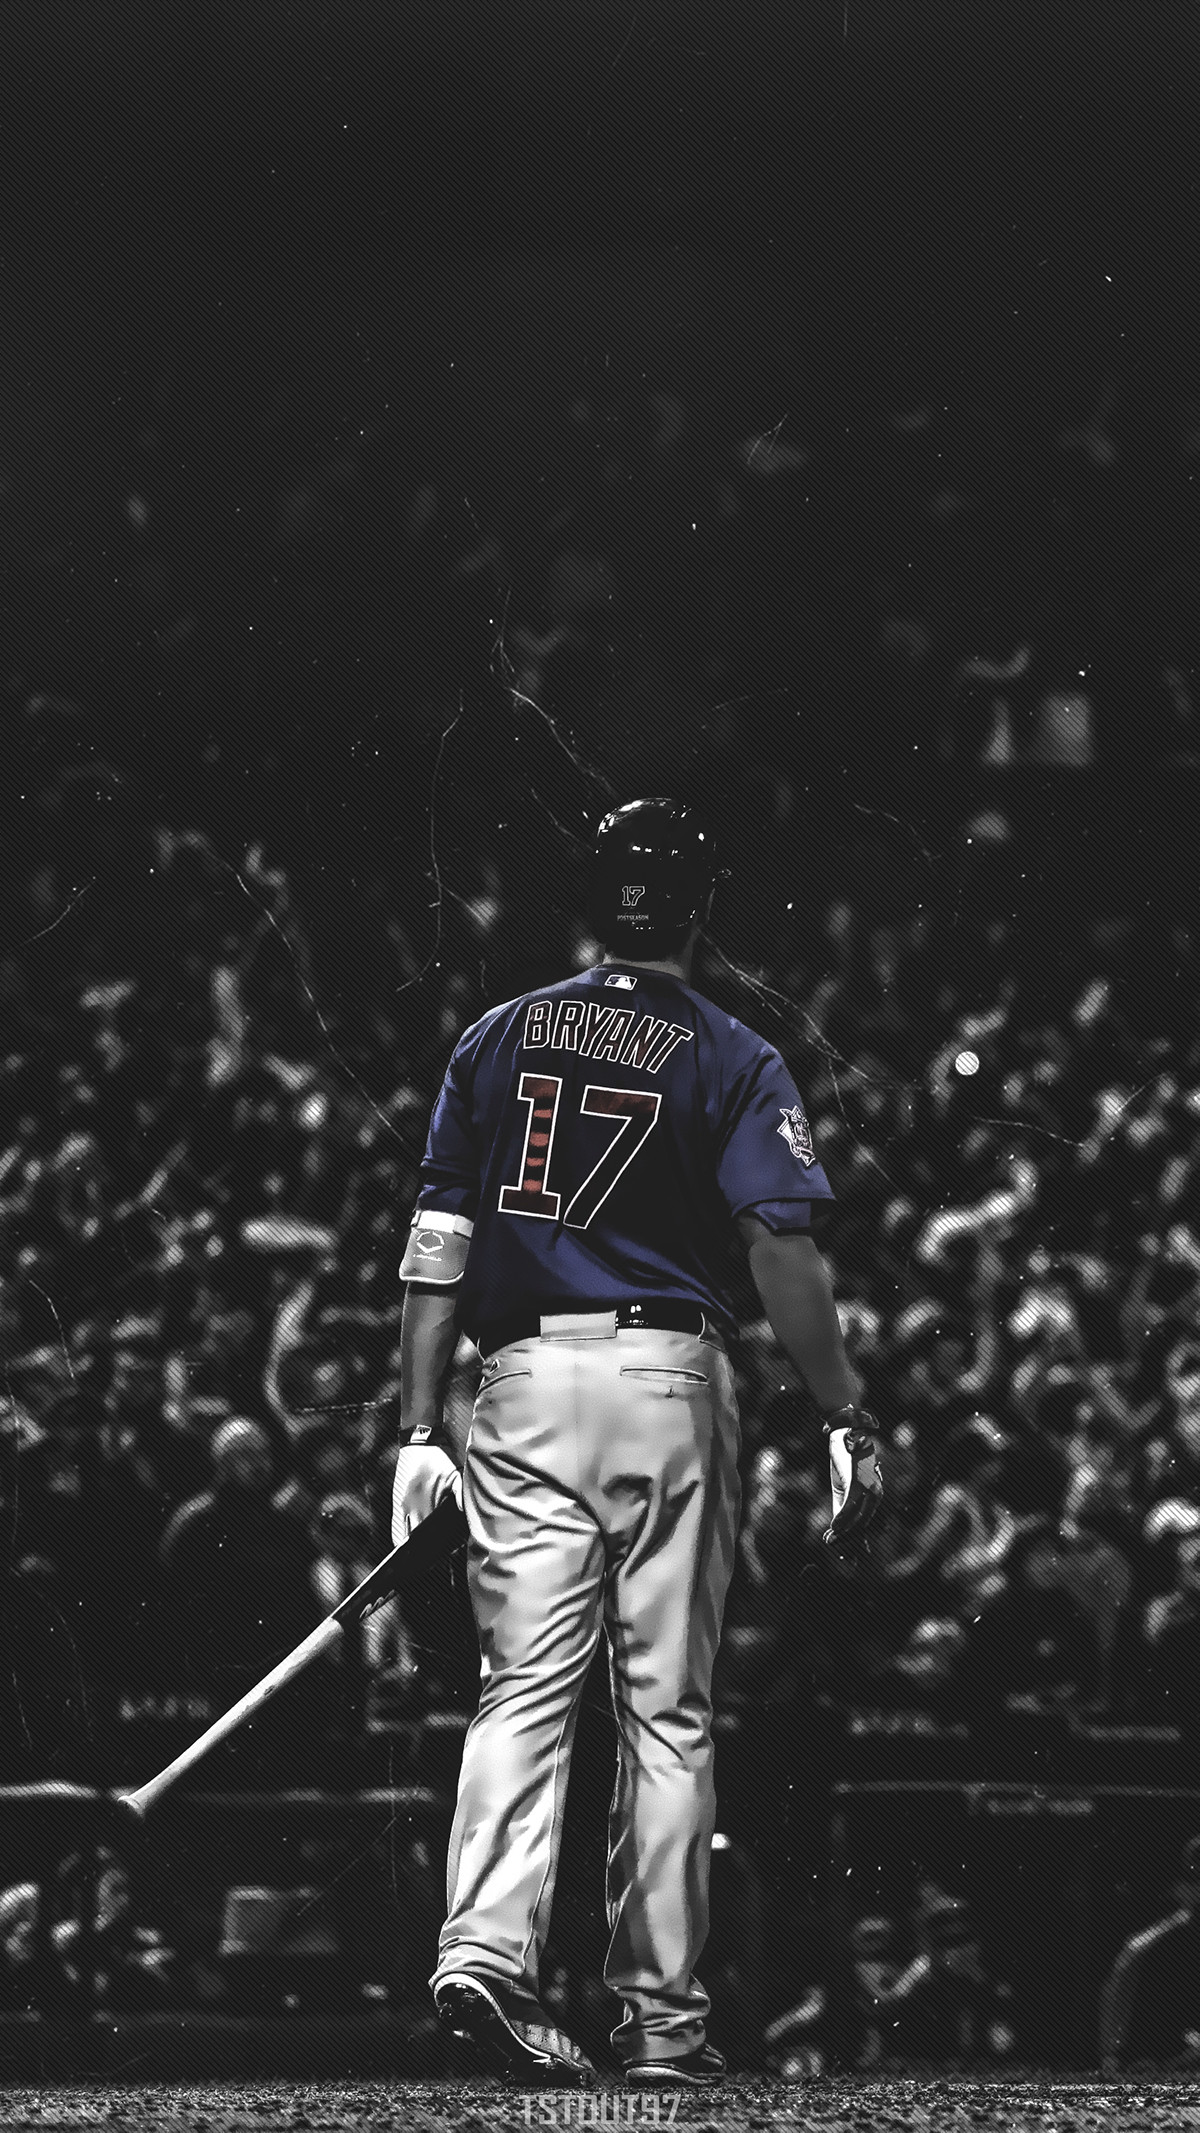 Chicago Cubs Wallpaper Collection For Free Download Kris Bryant Mobile Phone  Wallpaper on Behance …